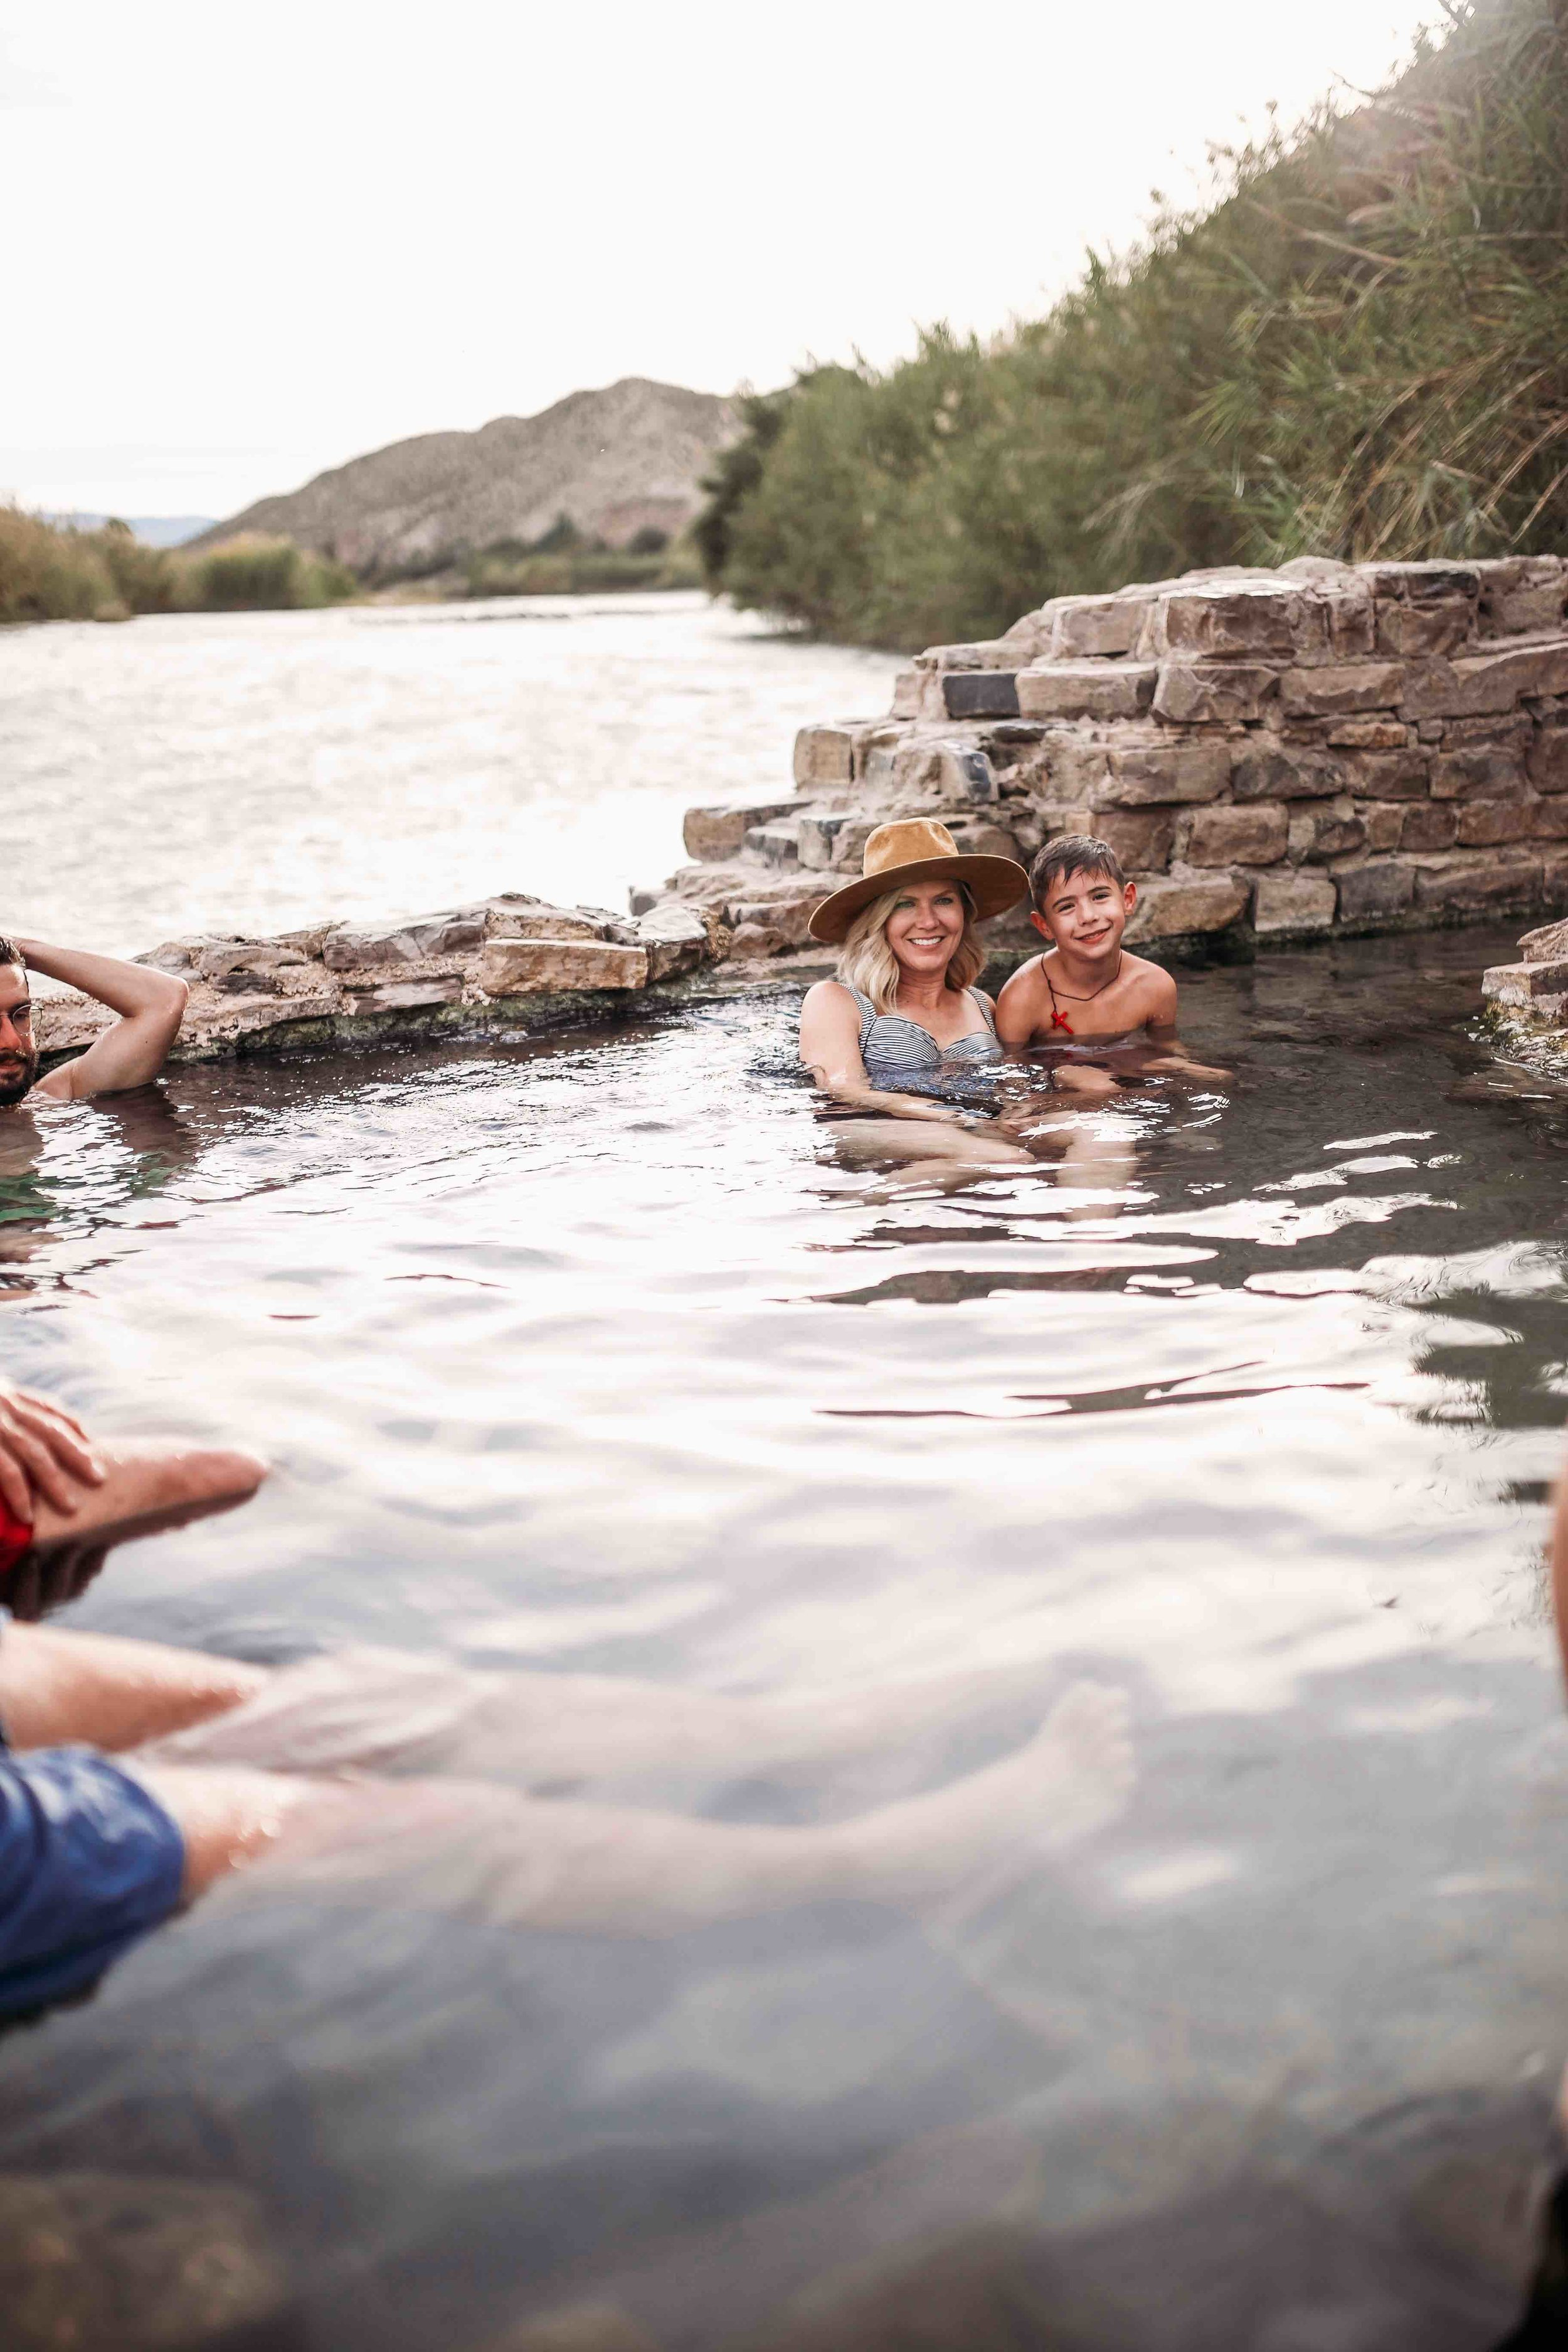 Hot Springs00003.jpeg